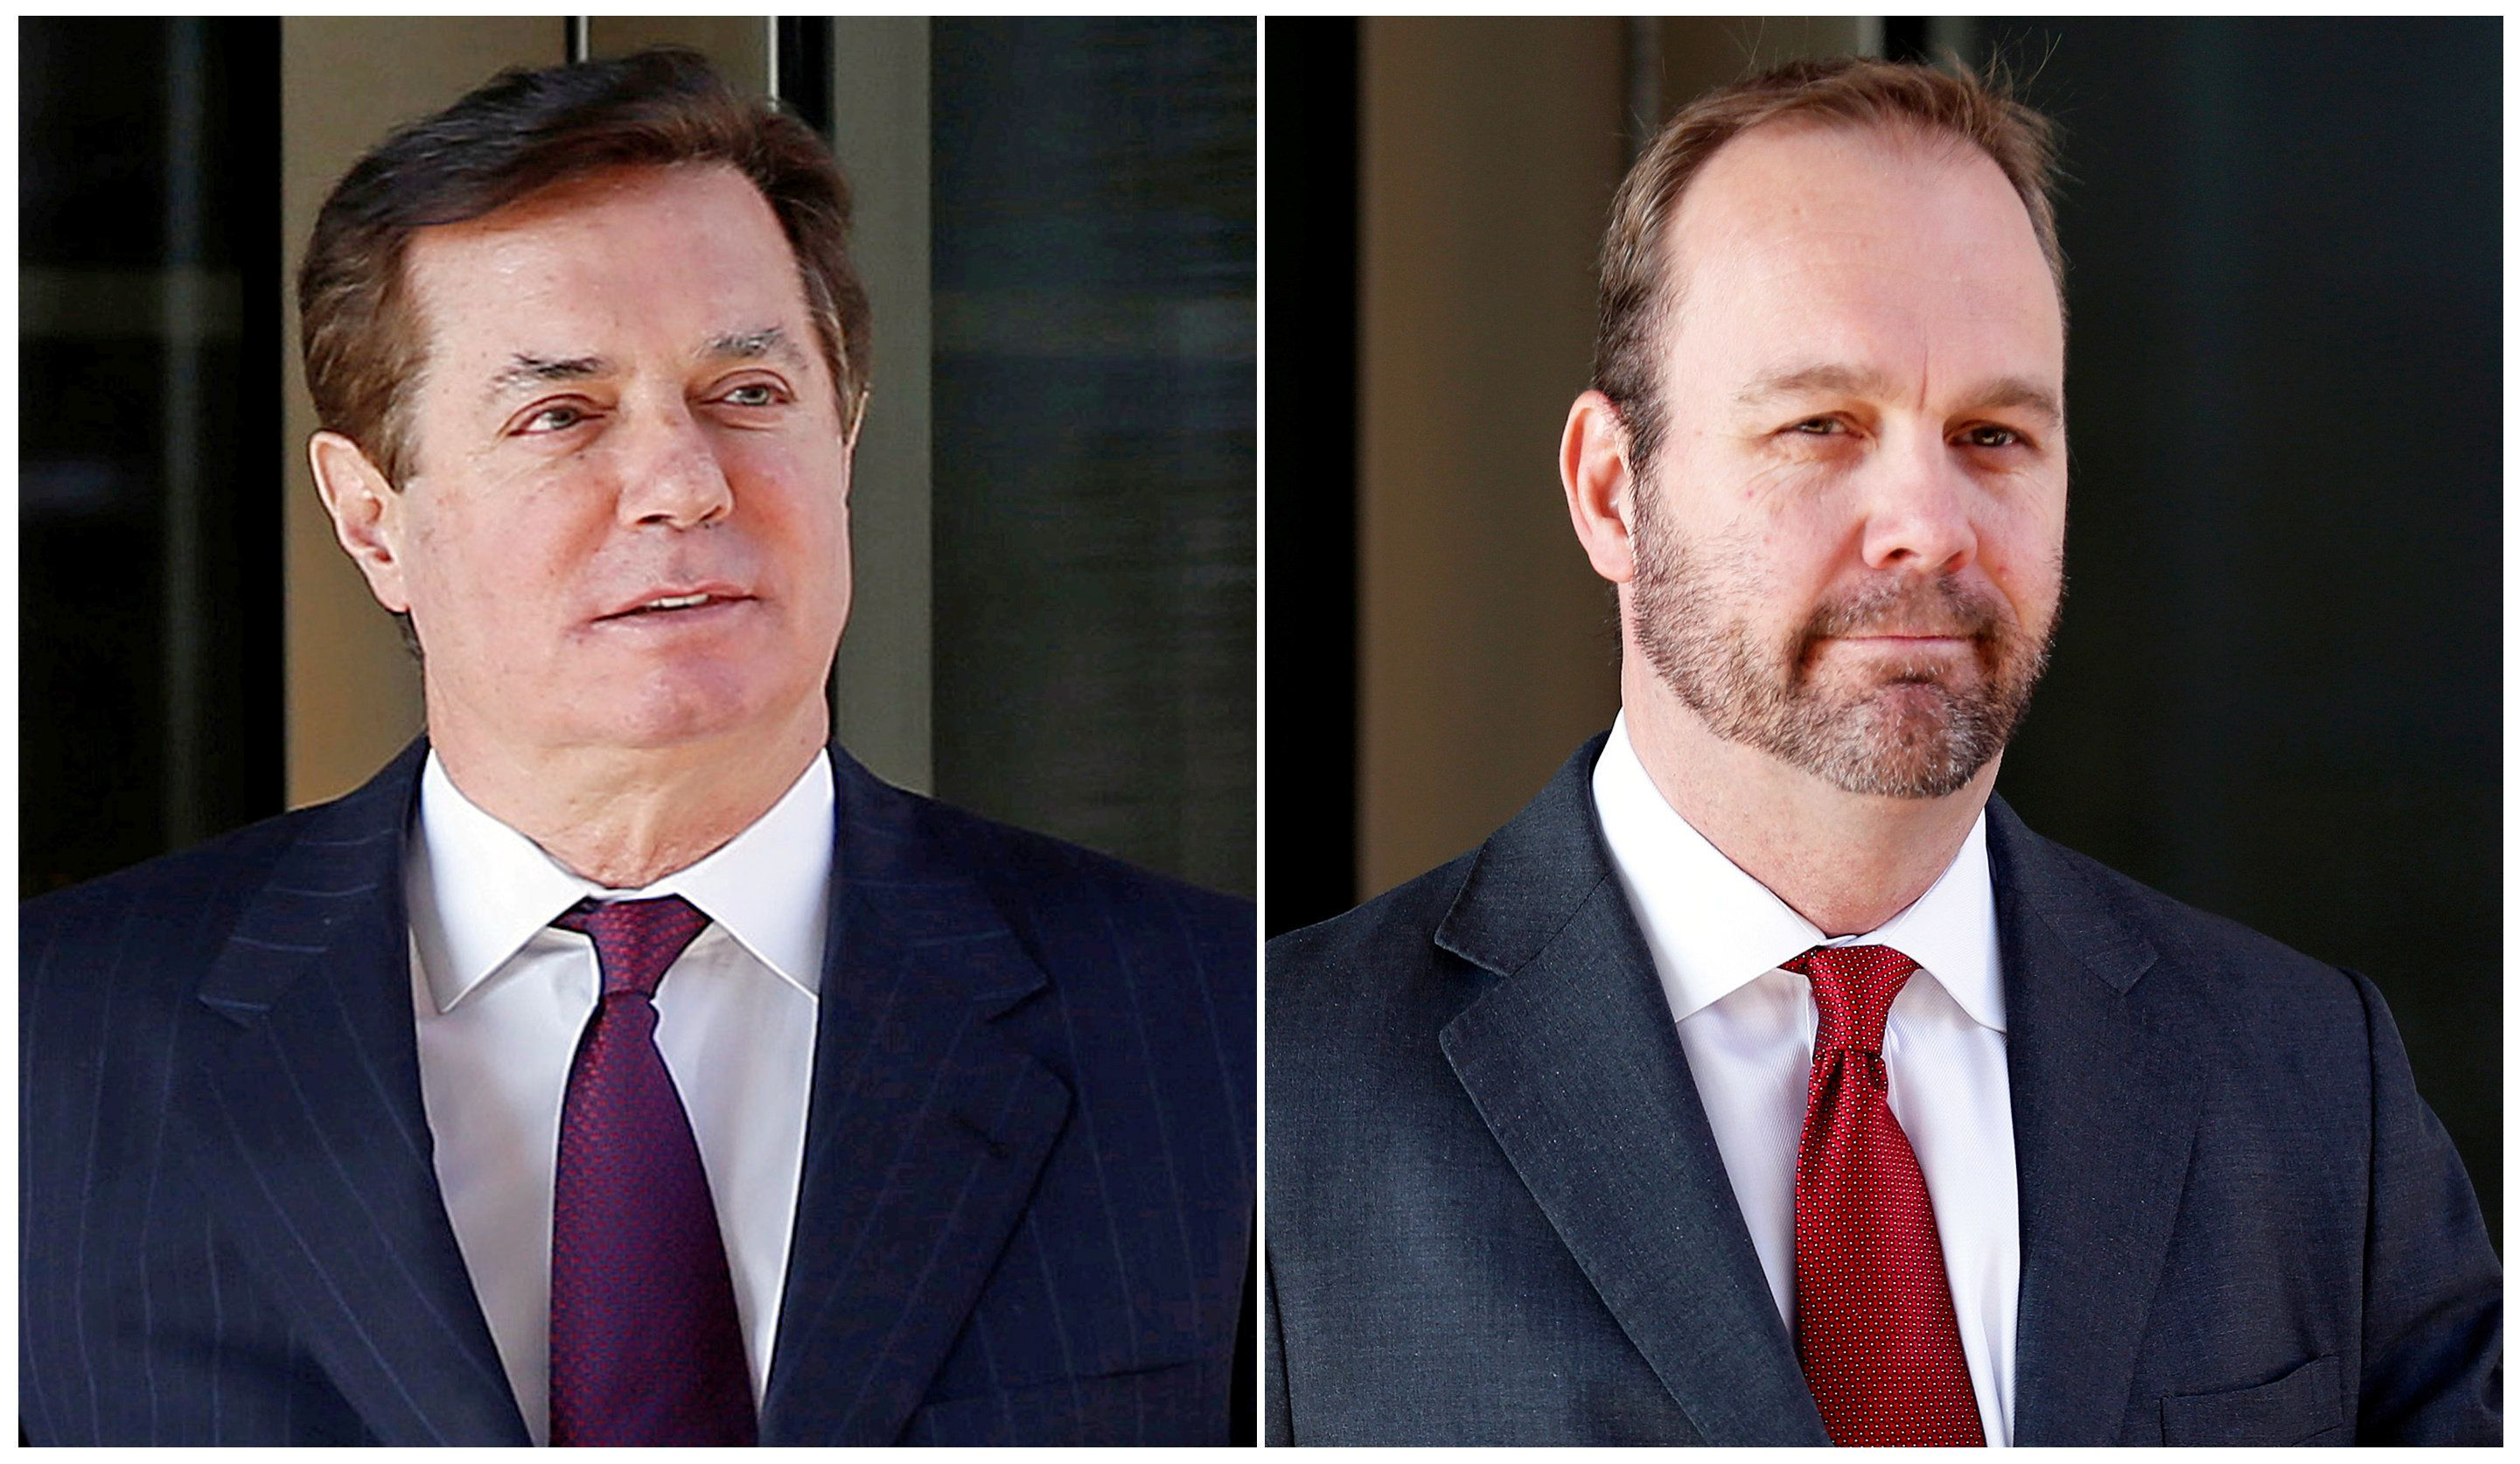 In testimony Tuesday, Rick Gates (right) detailed various schemes he engaged in while working for Paul Manafort (left).